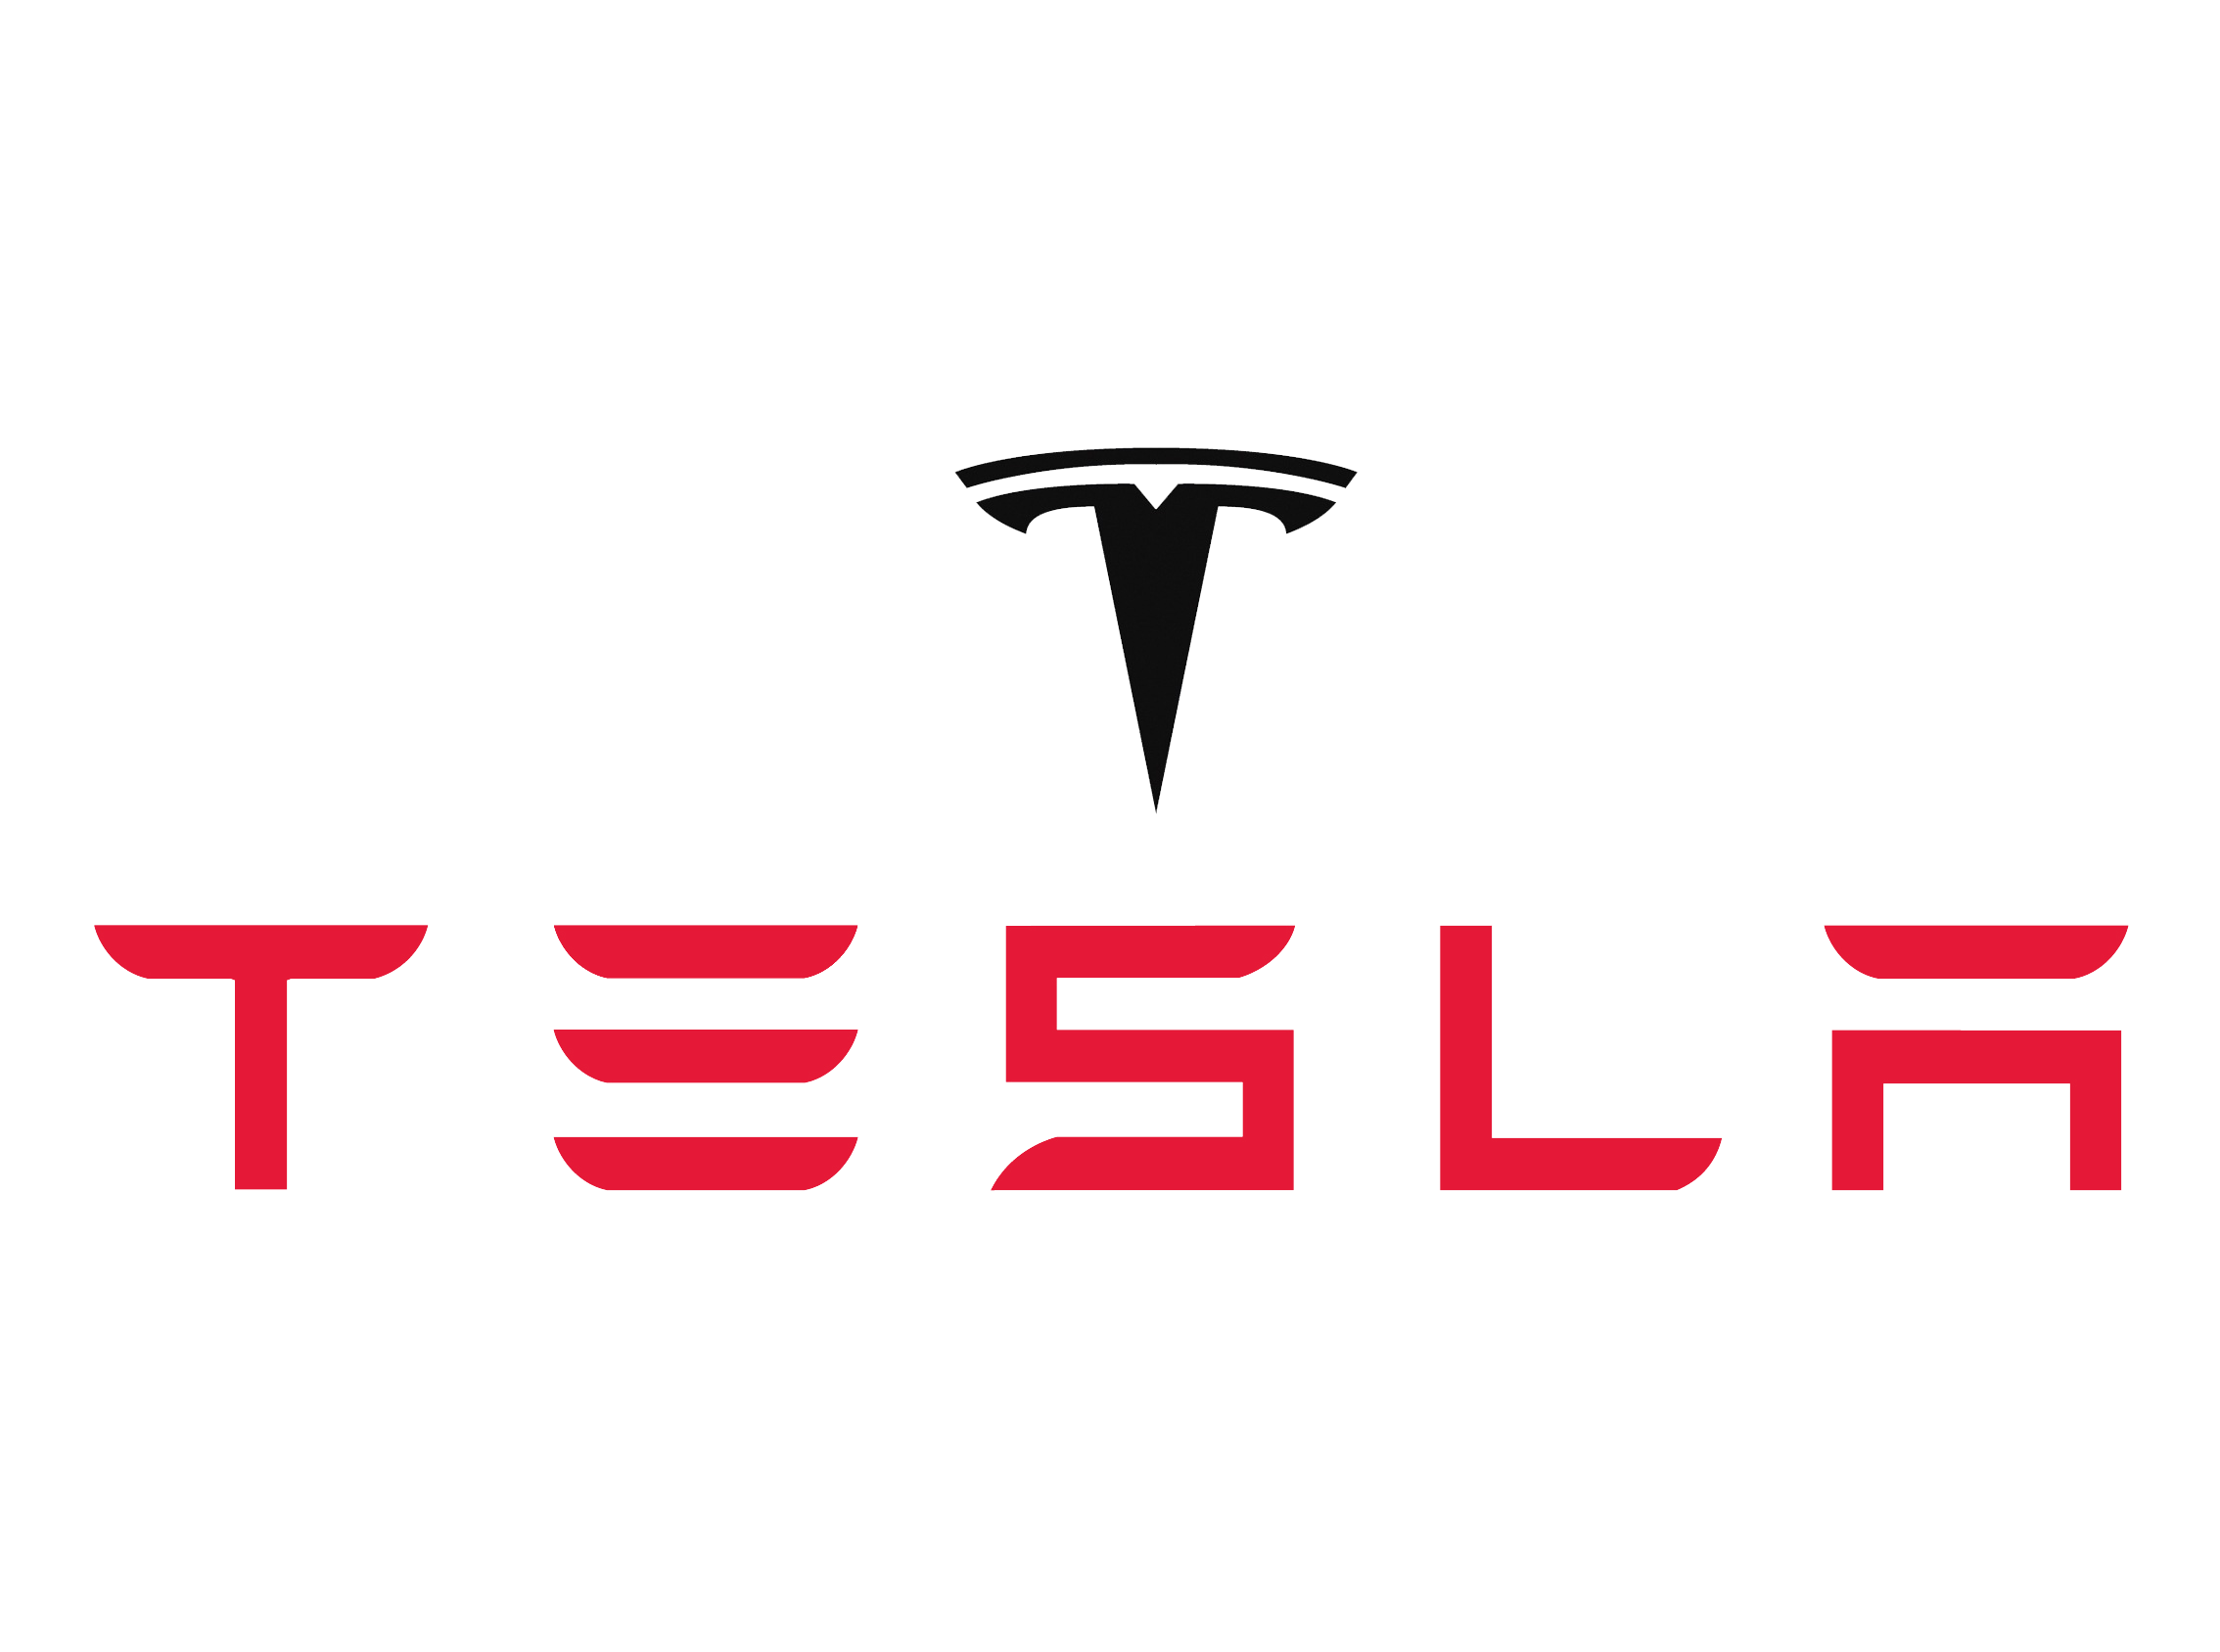 Tesla Preferred Repairer